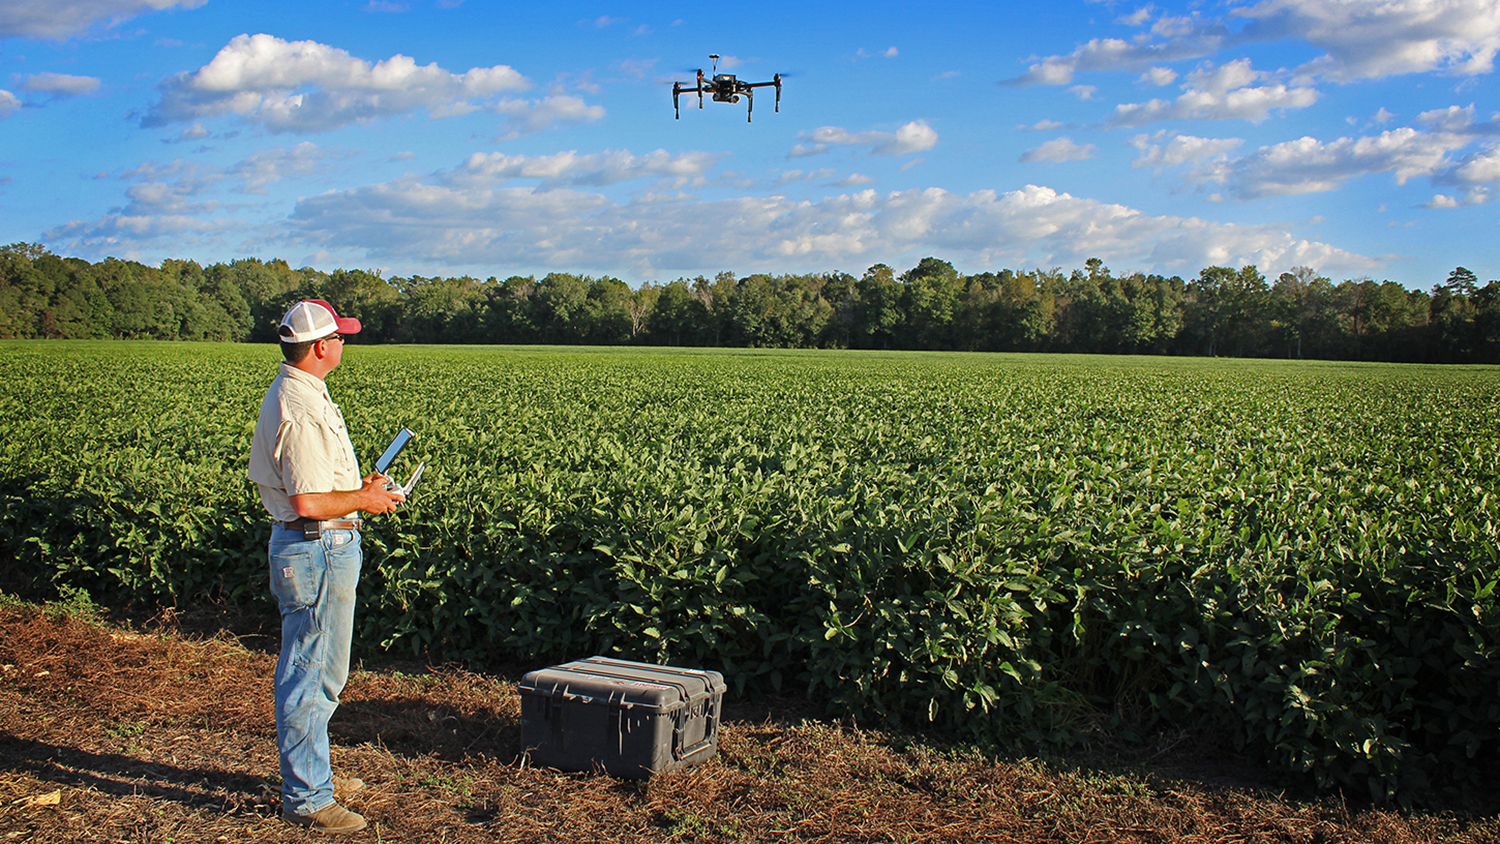 Man with drone flying over farm field